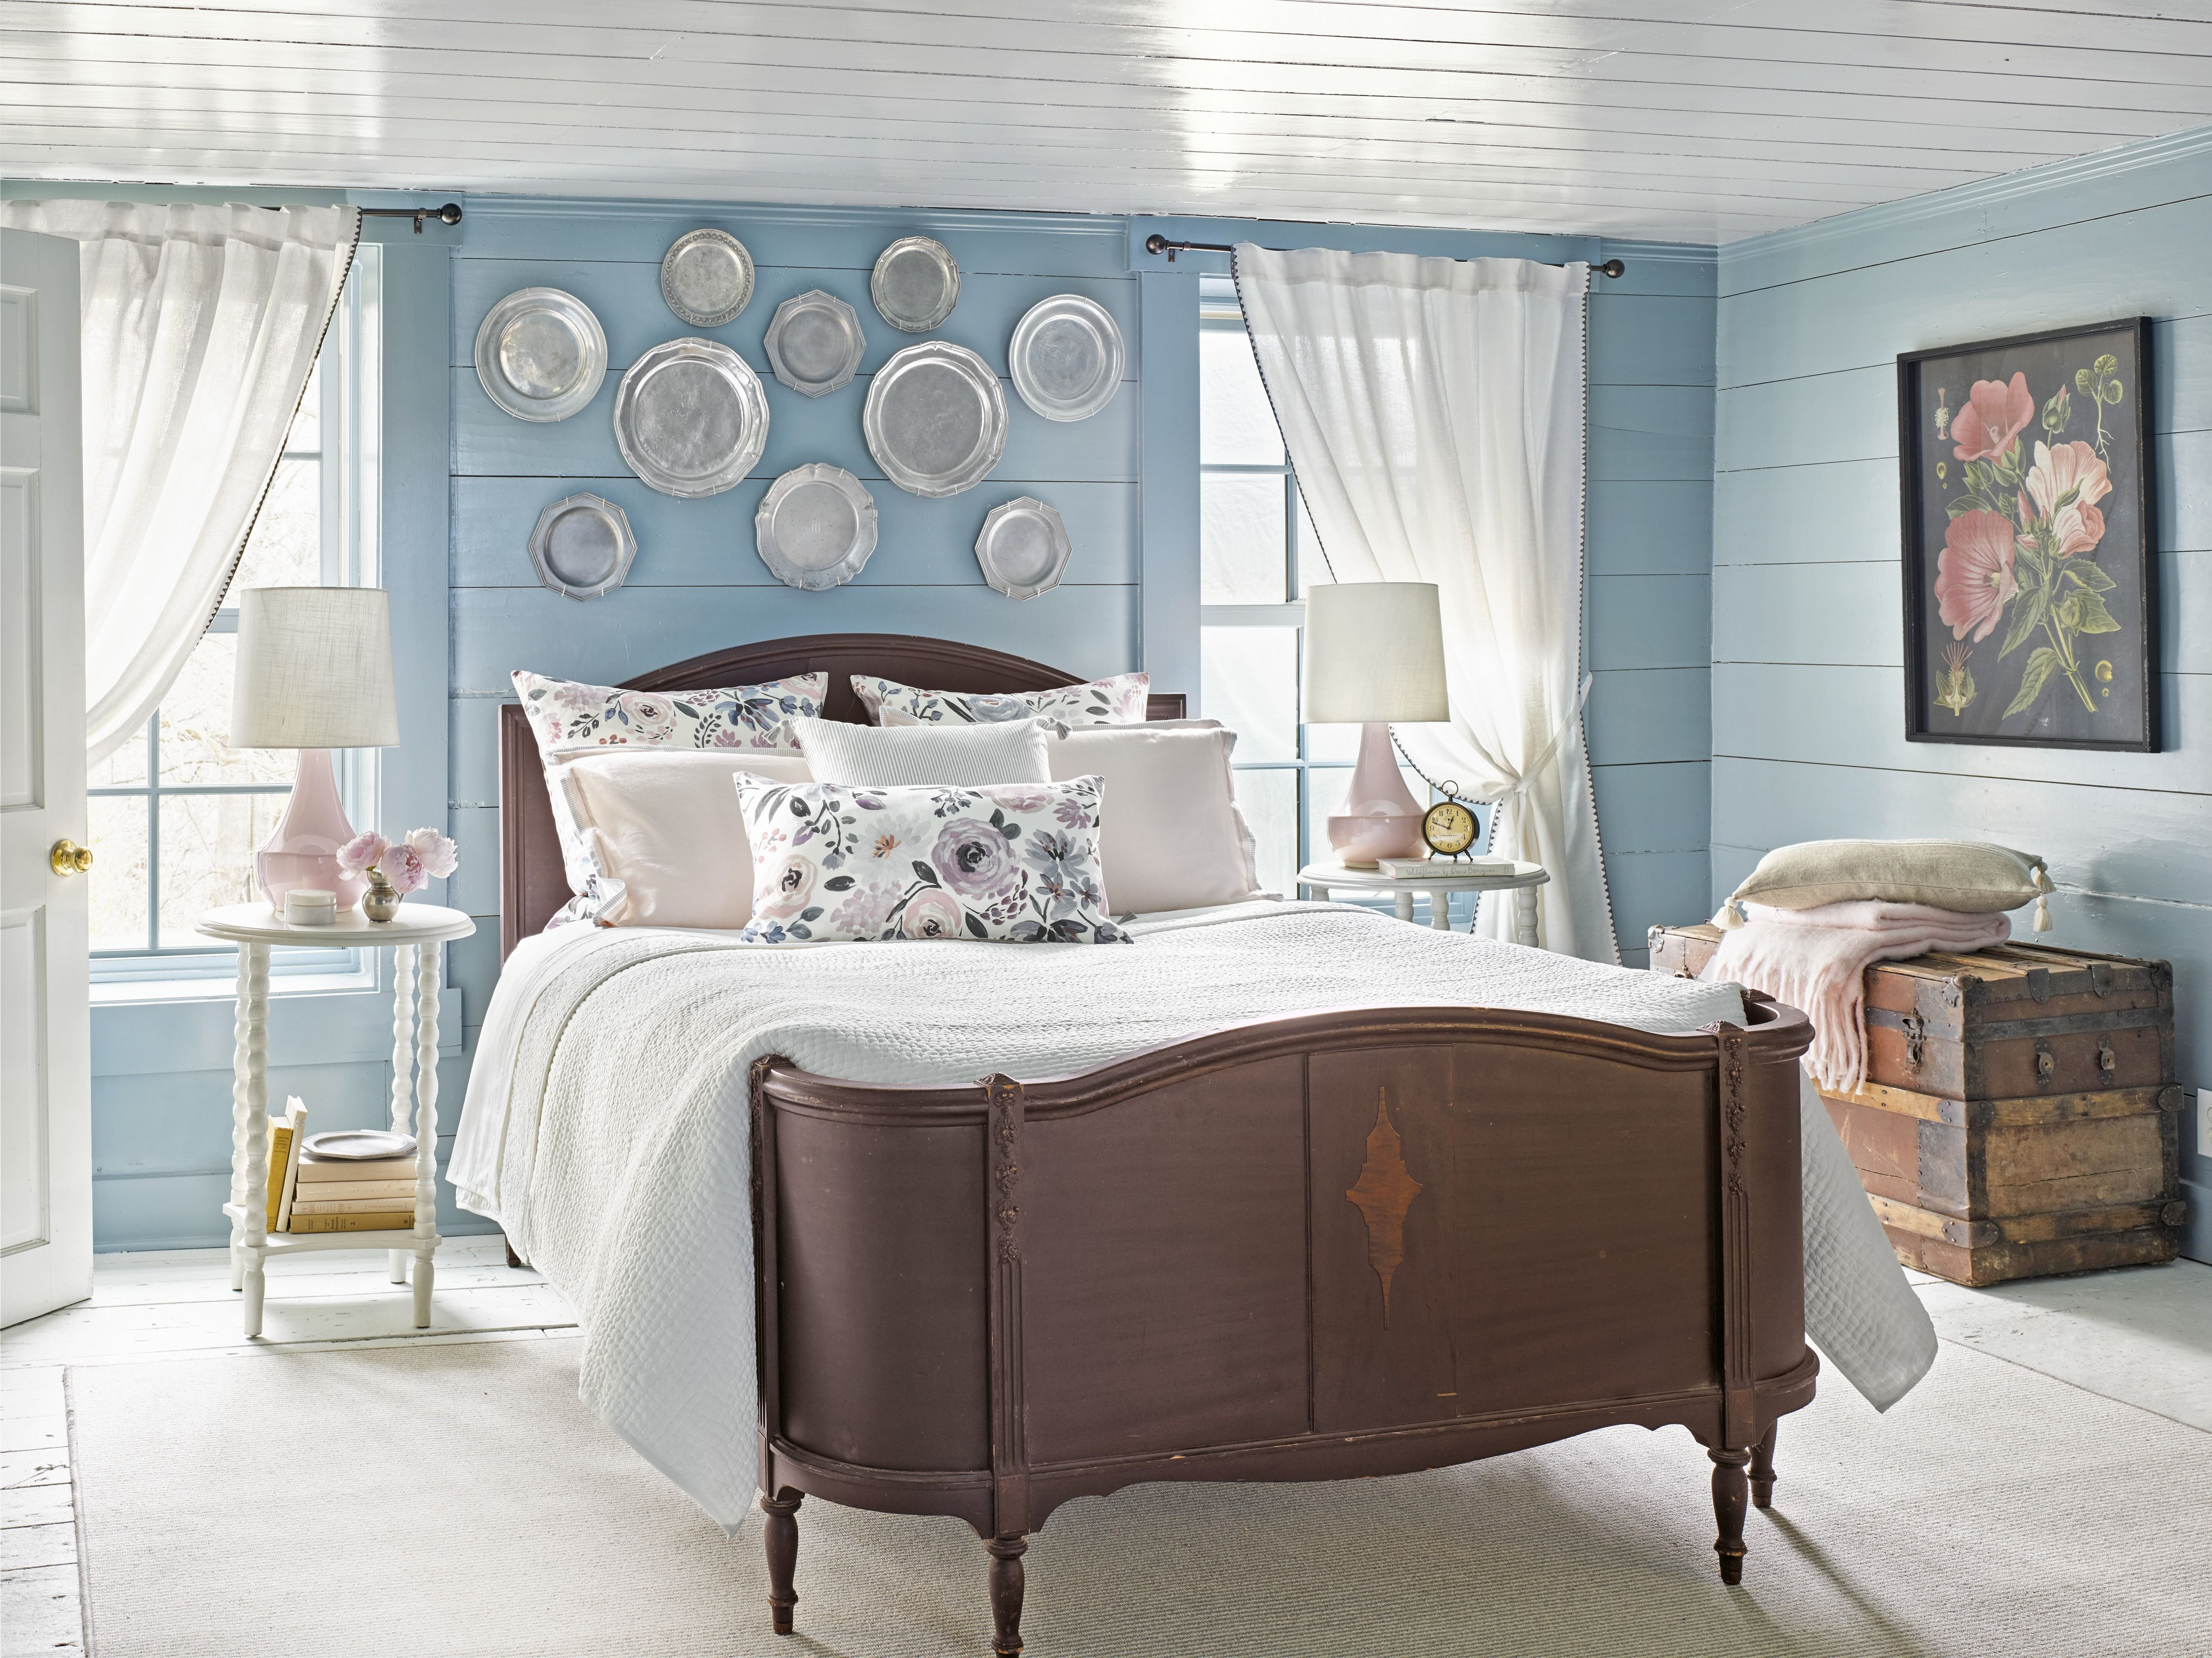 15 Best Paint Colors for Small Rooms , Painting Small Rooms